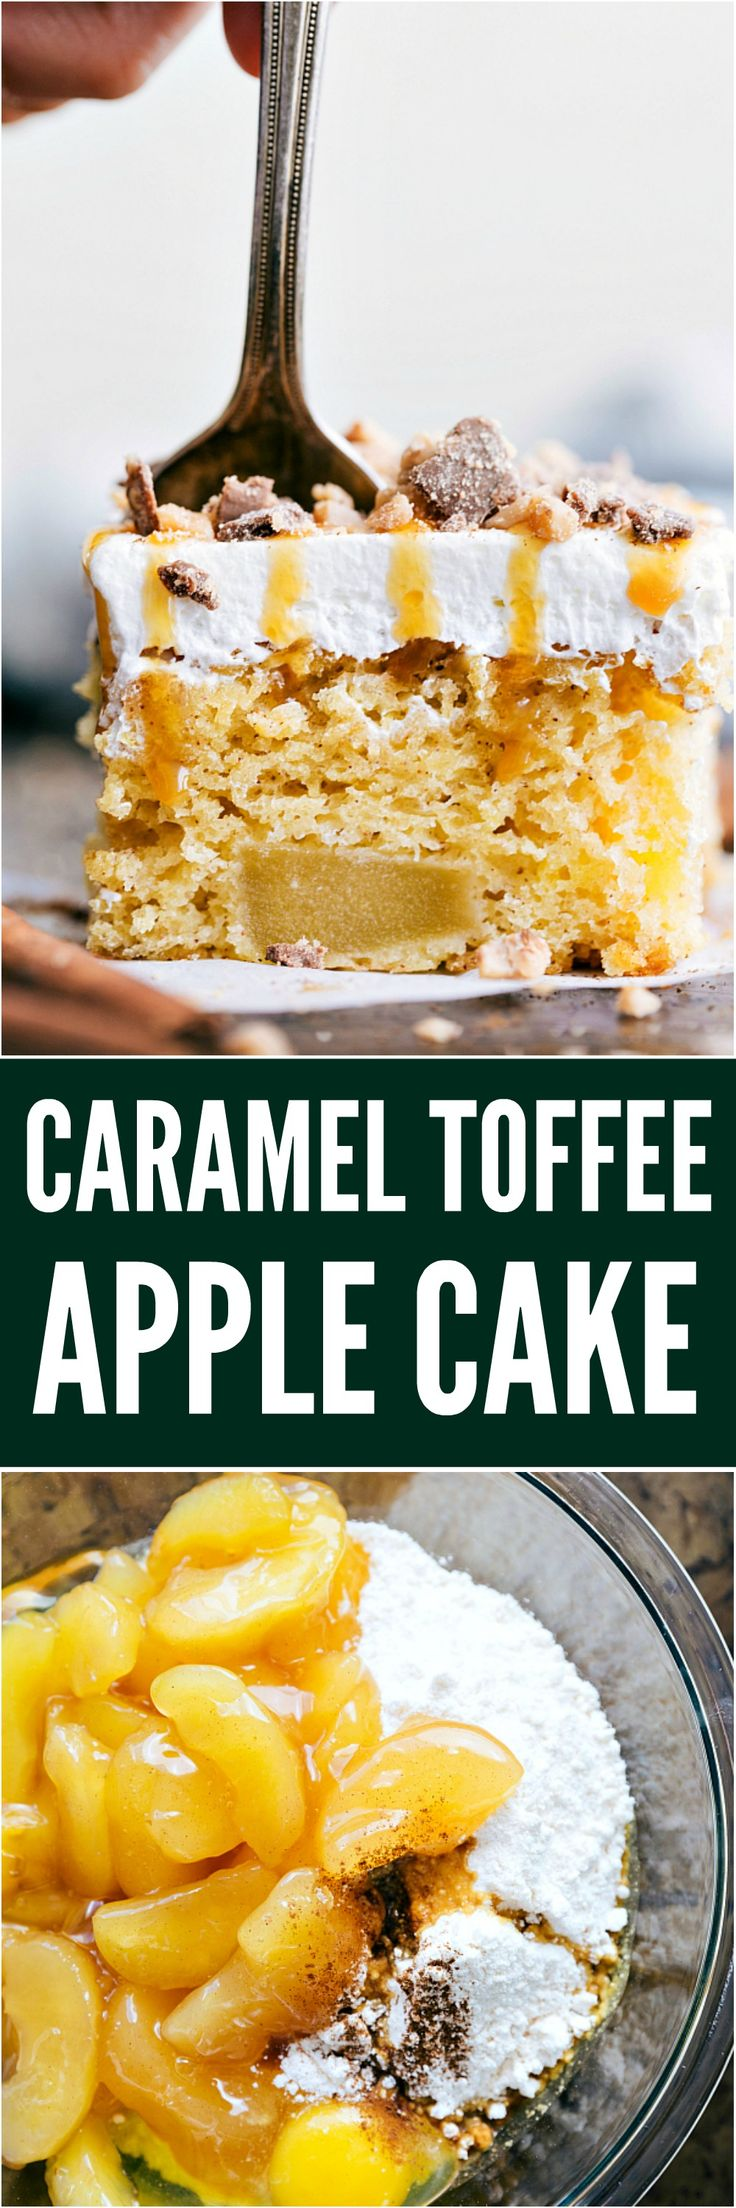 Caramel Toffee Apple Cake is a tender and moist cake with apples baked right inside! Topped with cool whip topping toffee bits and drizzled in caramel, this will become a new favorite!